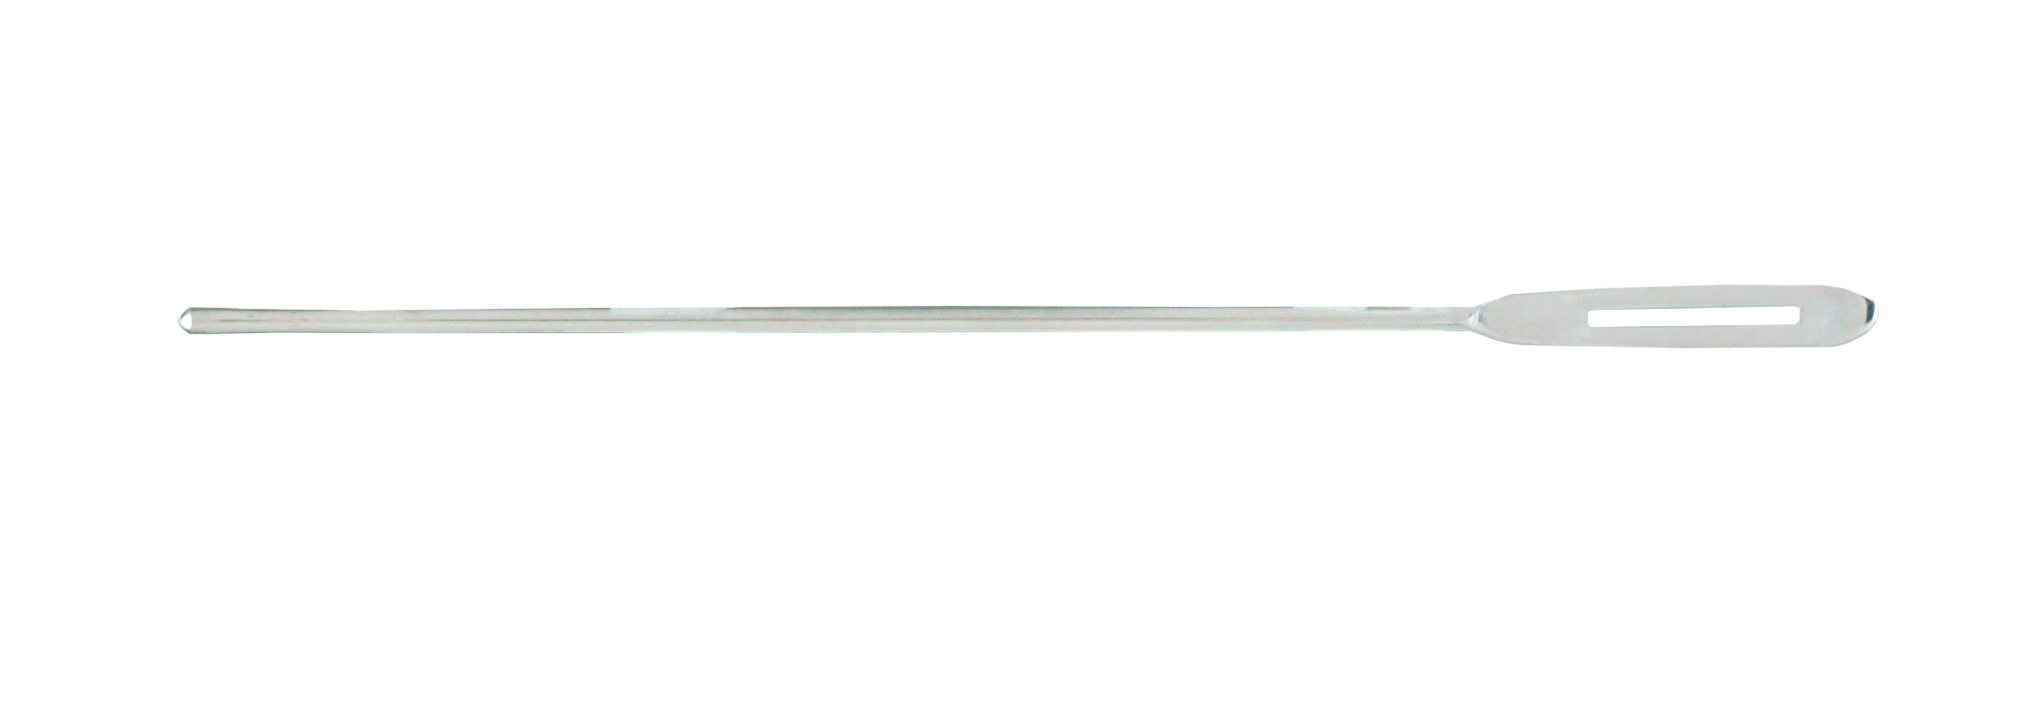 miltex-probes-with-eye-malleable-stainless-10-24-ss-miltex.jpg